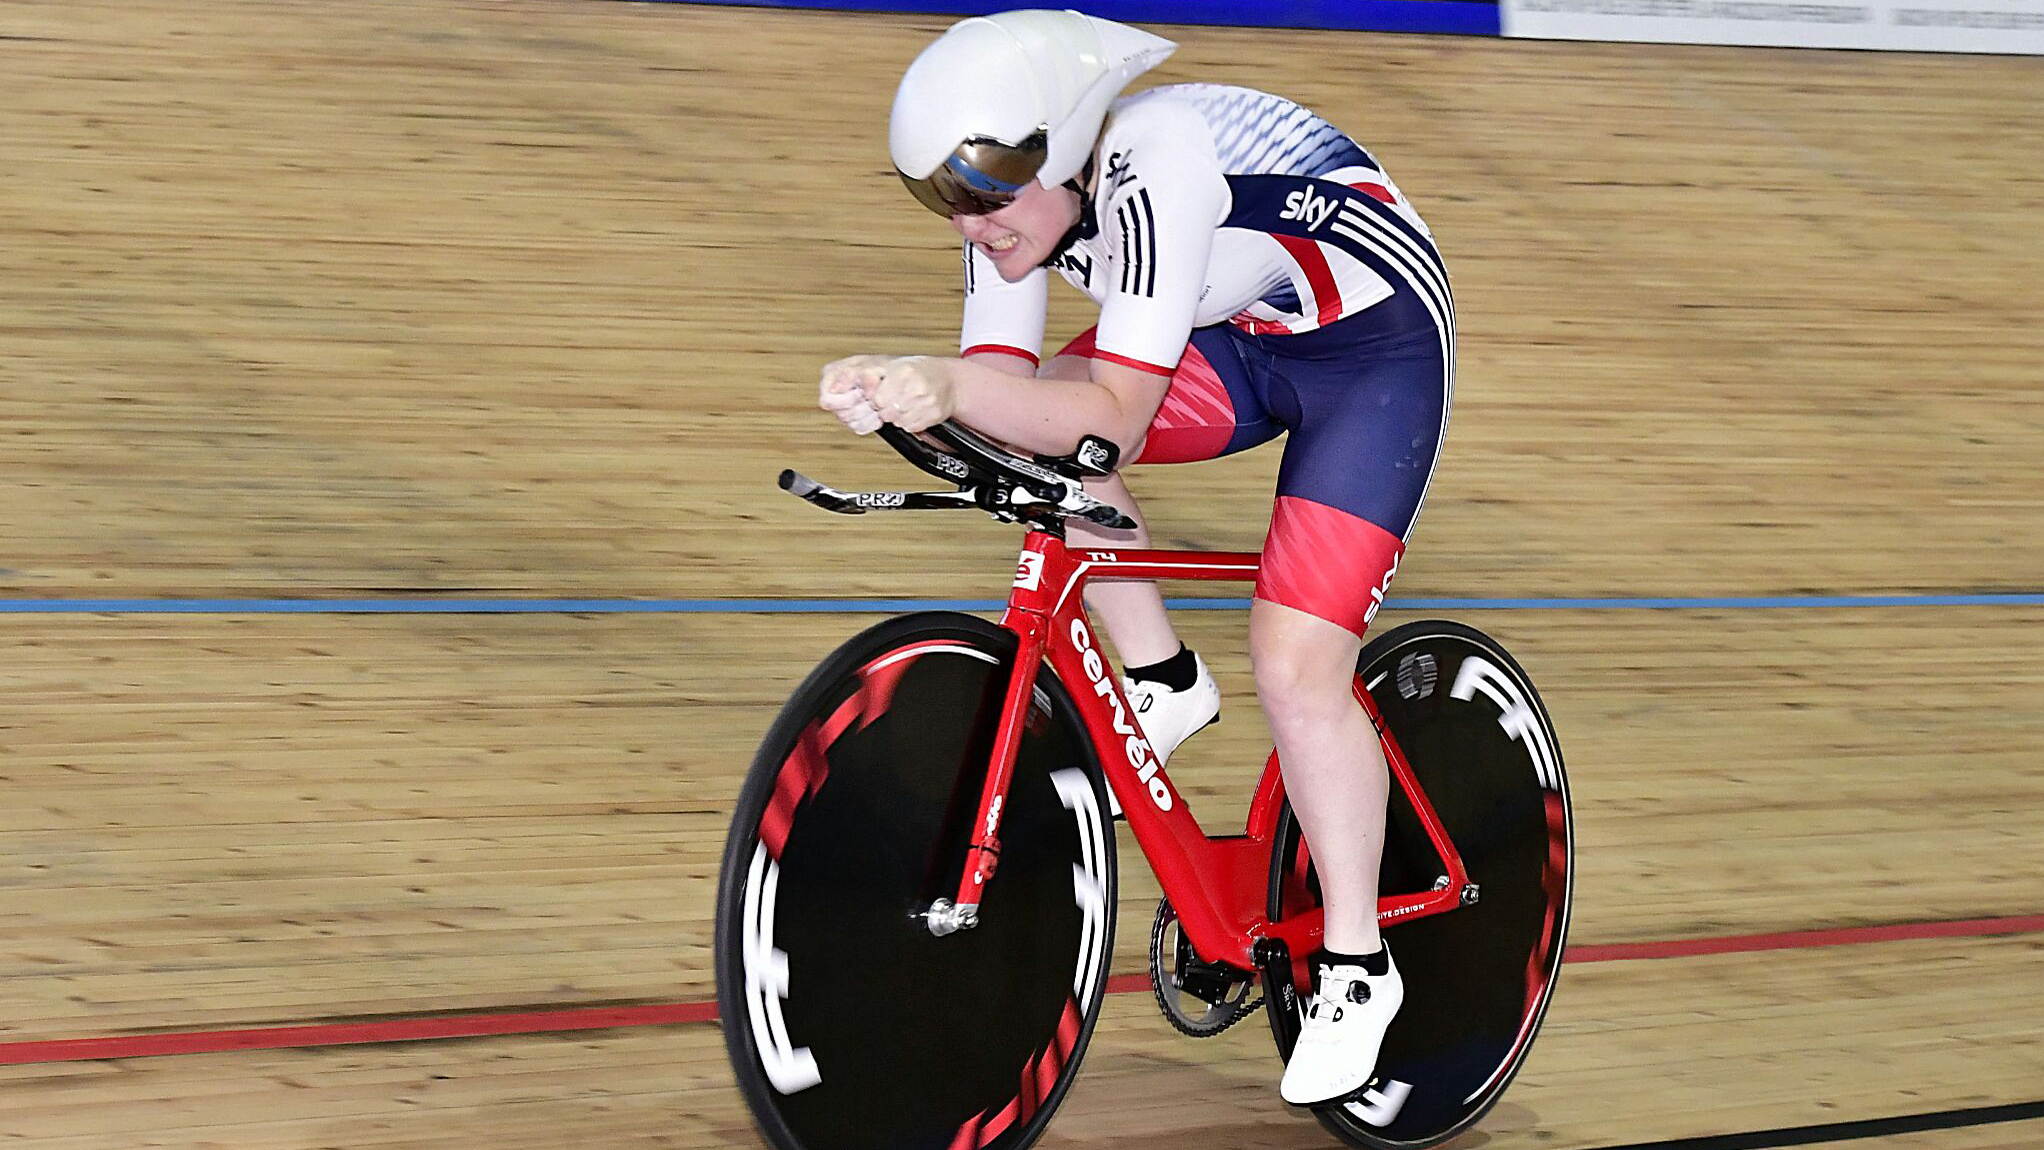 Emily Kay wins under-23 omnium bronze at the European championships